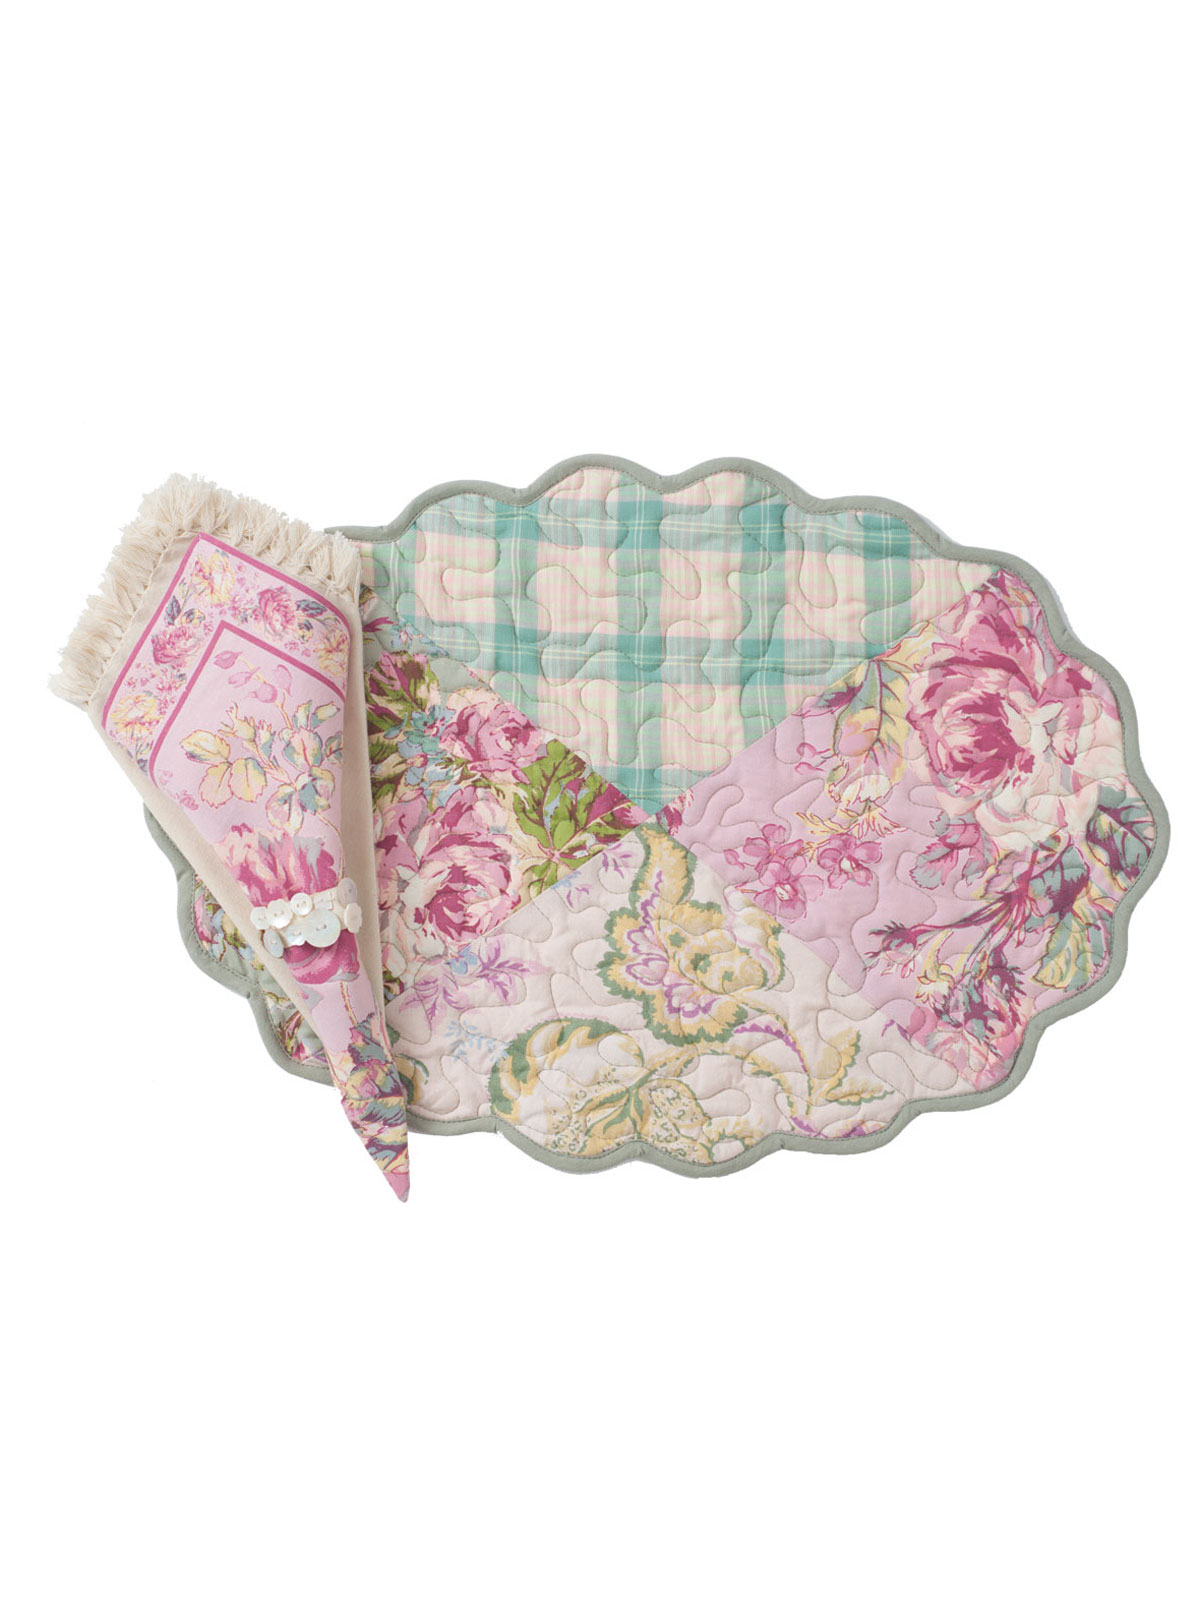 Victorian Patchwork Placemat Quilted Set 4 Linens